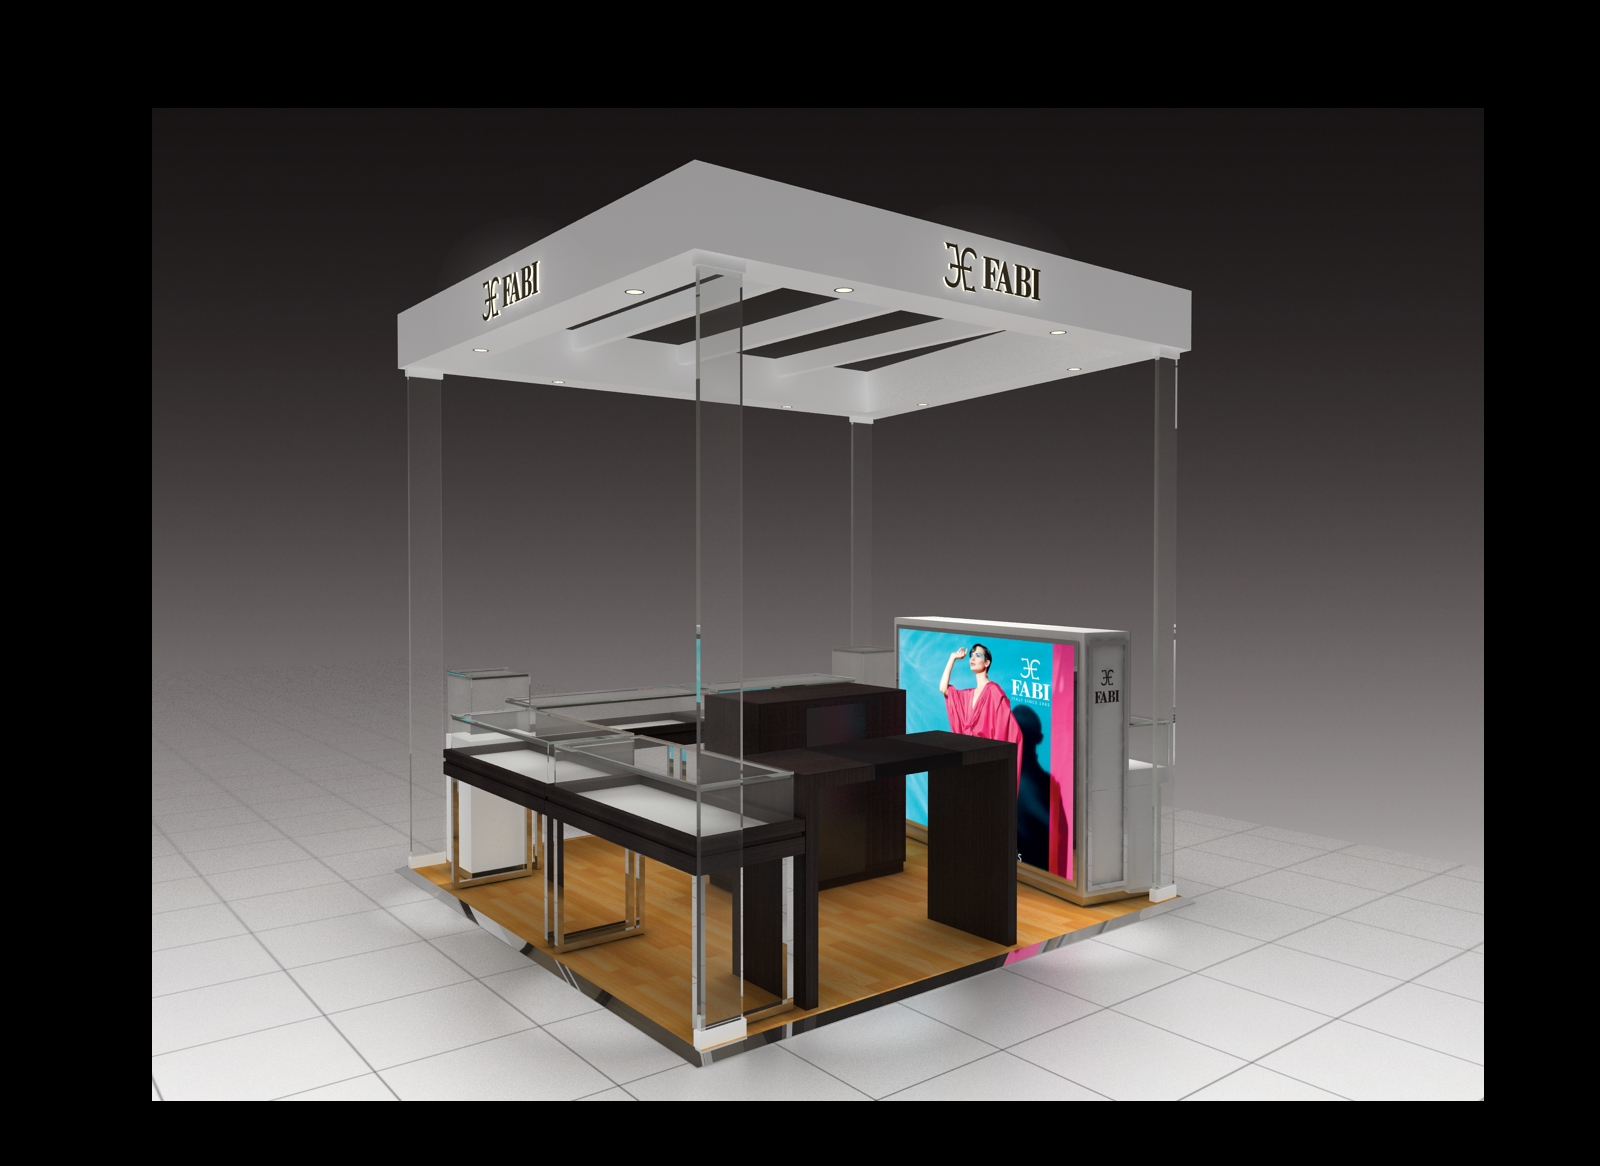 FABI Jewellery Kiosk below is a good expamle with 4 double tempered glass pillar to suppor the kiosk lighting ceiling